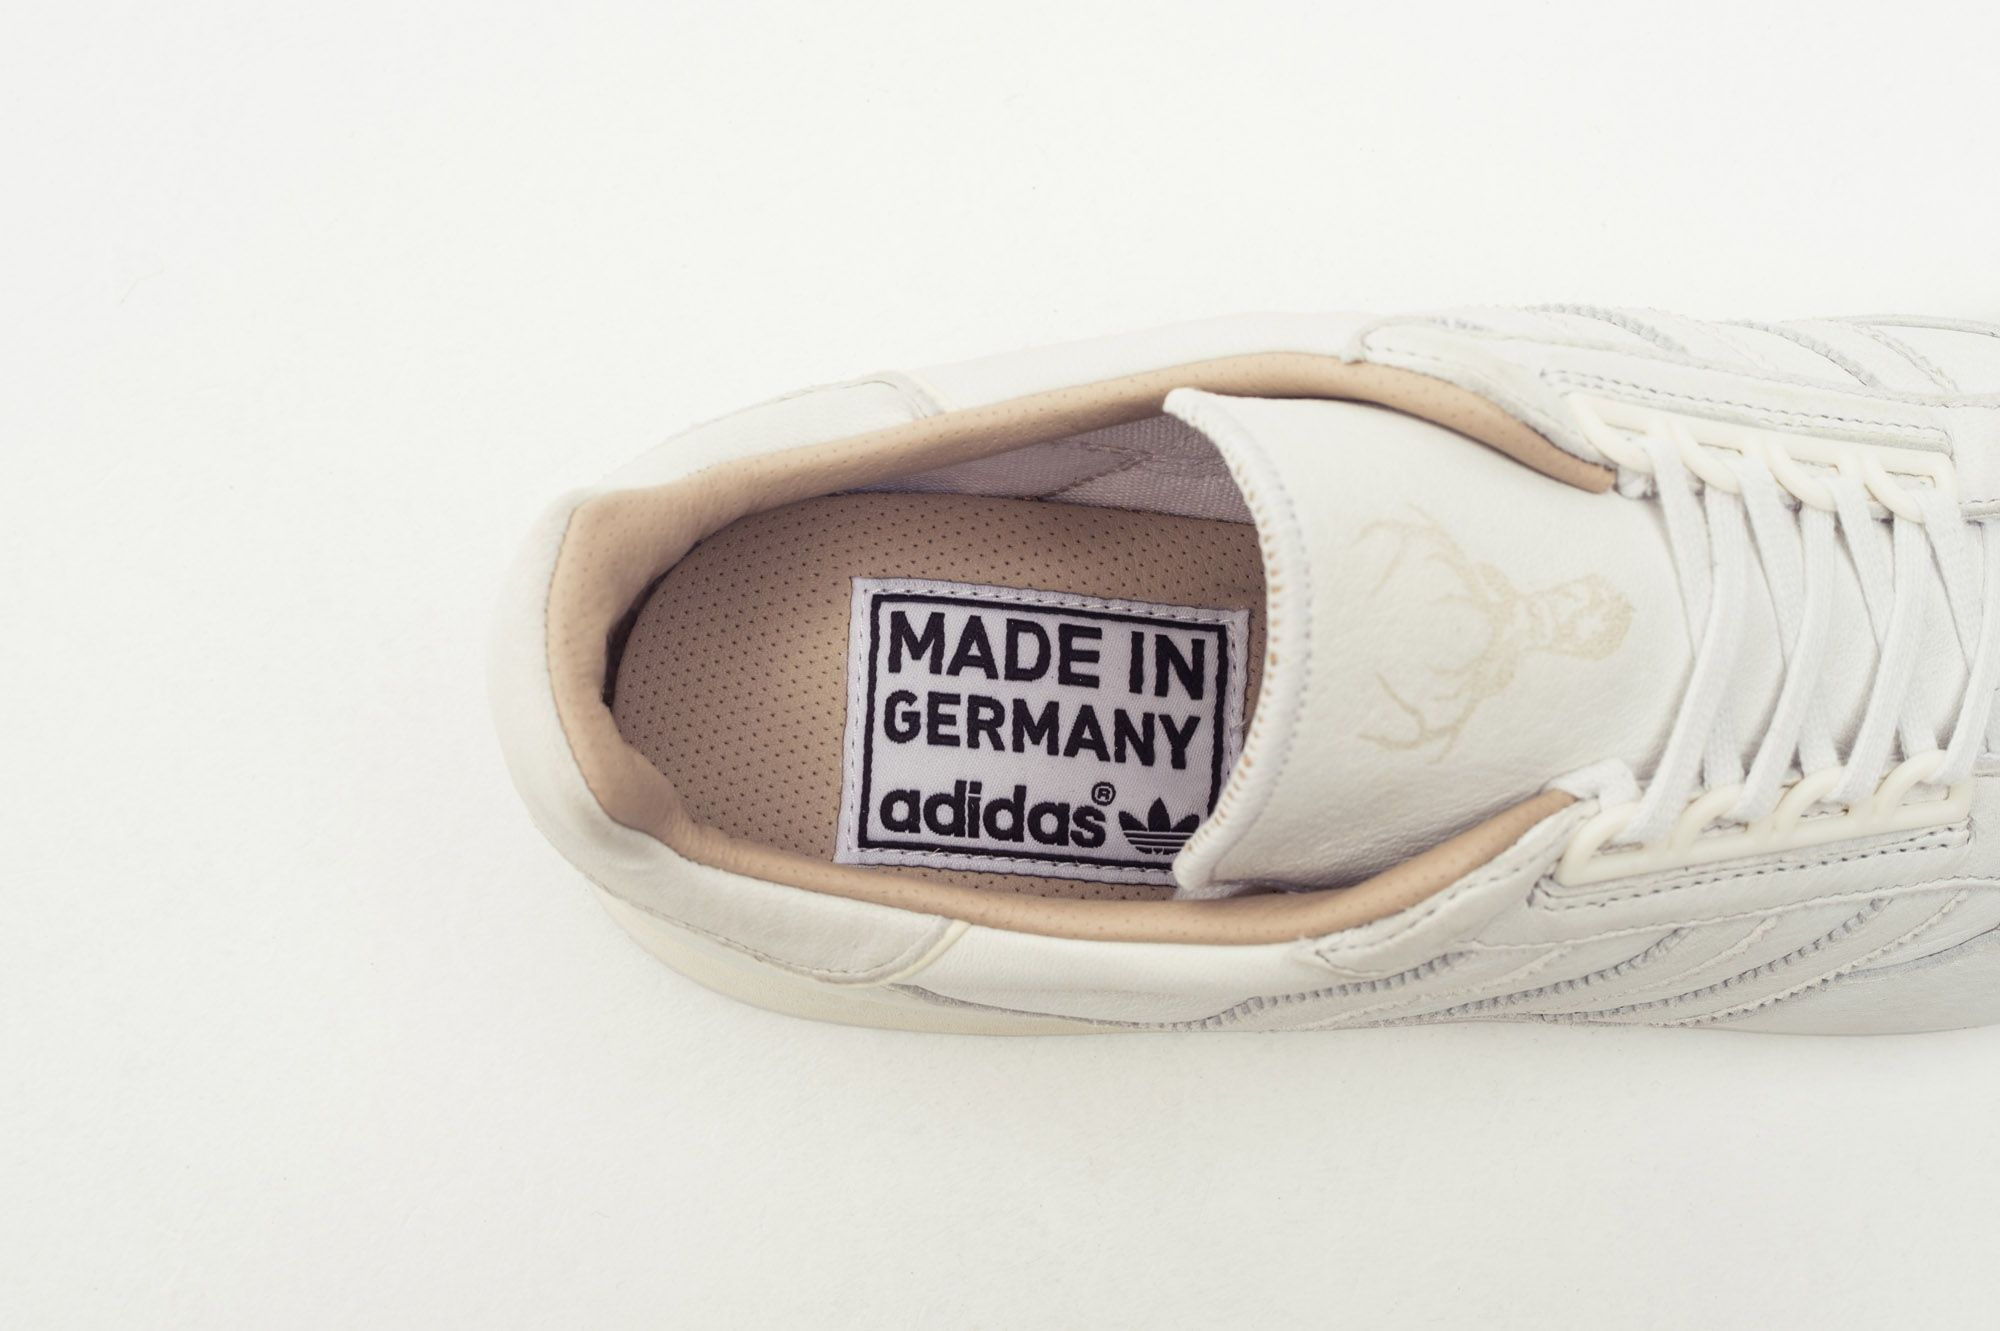 fe75c8bf283e31 adidas-made-in-germany-pack-12